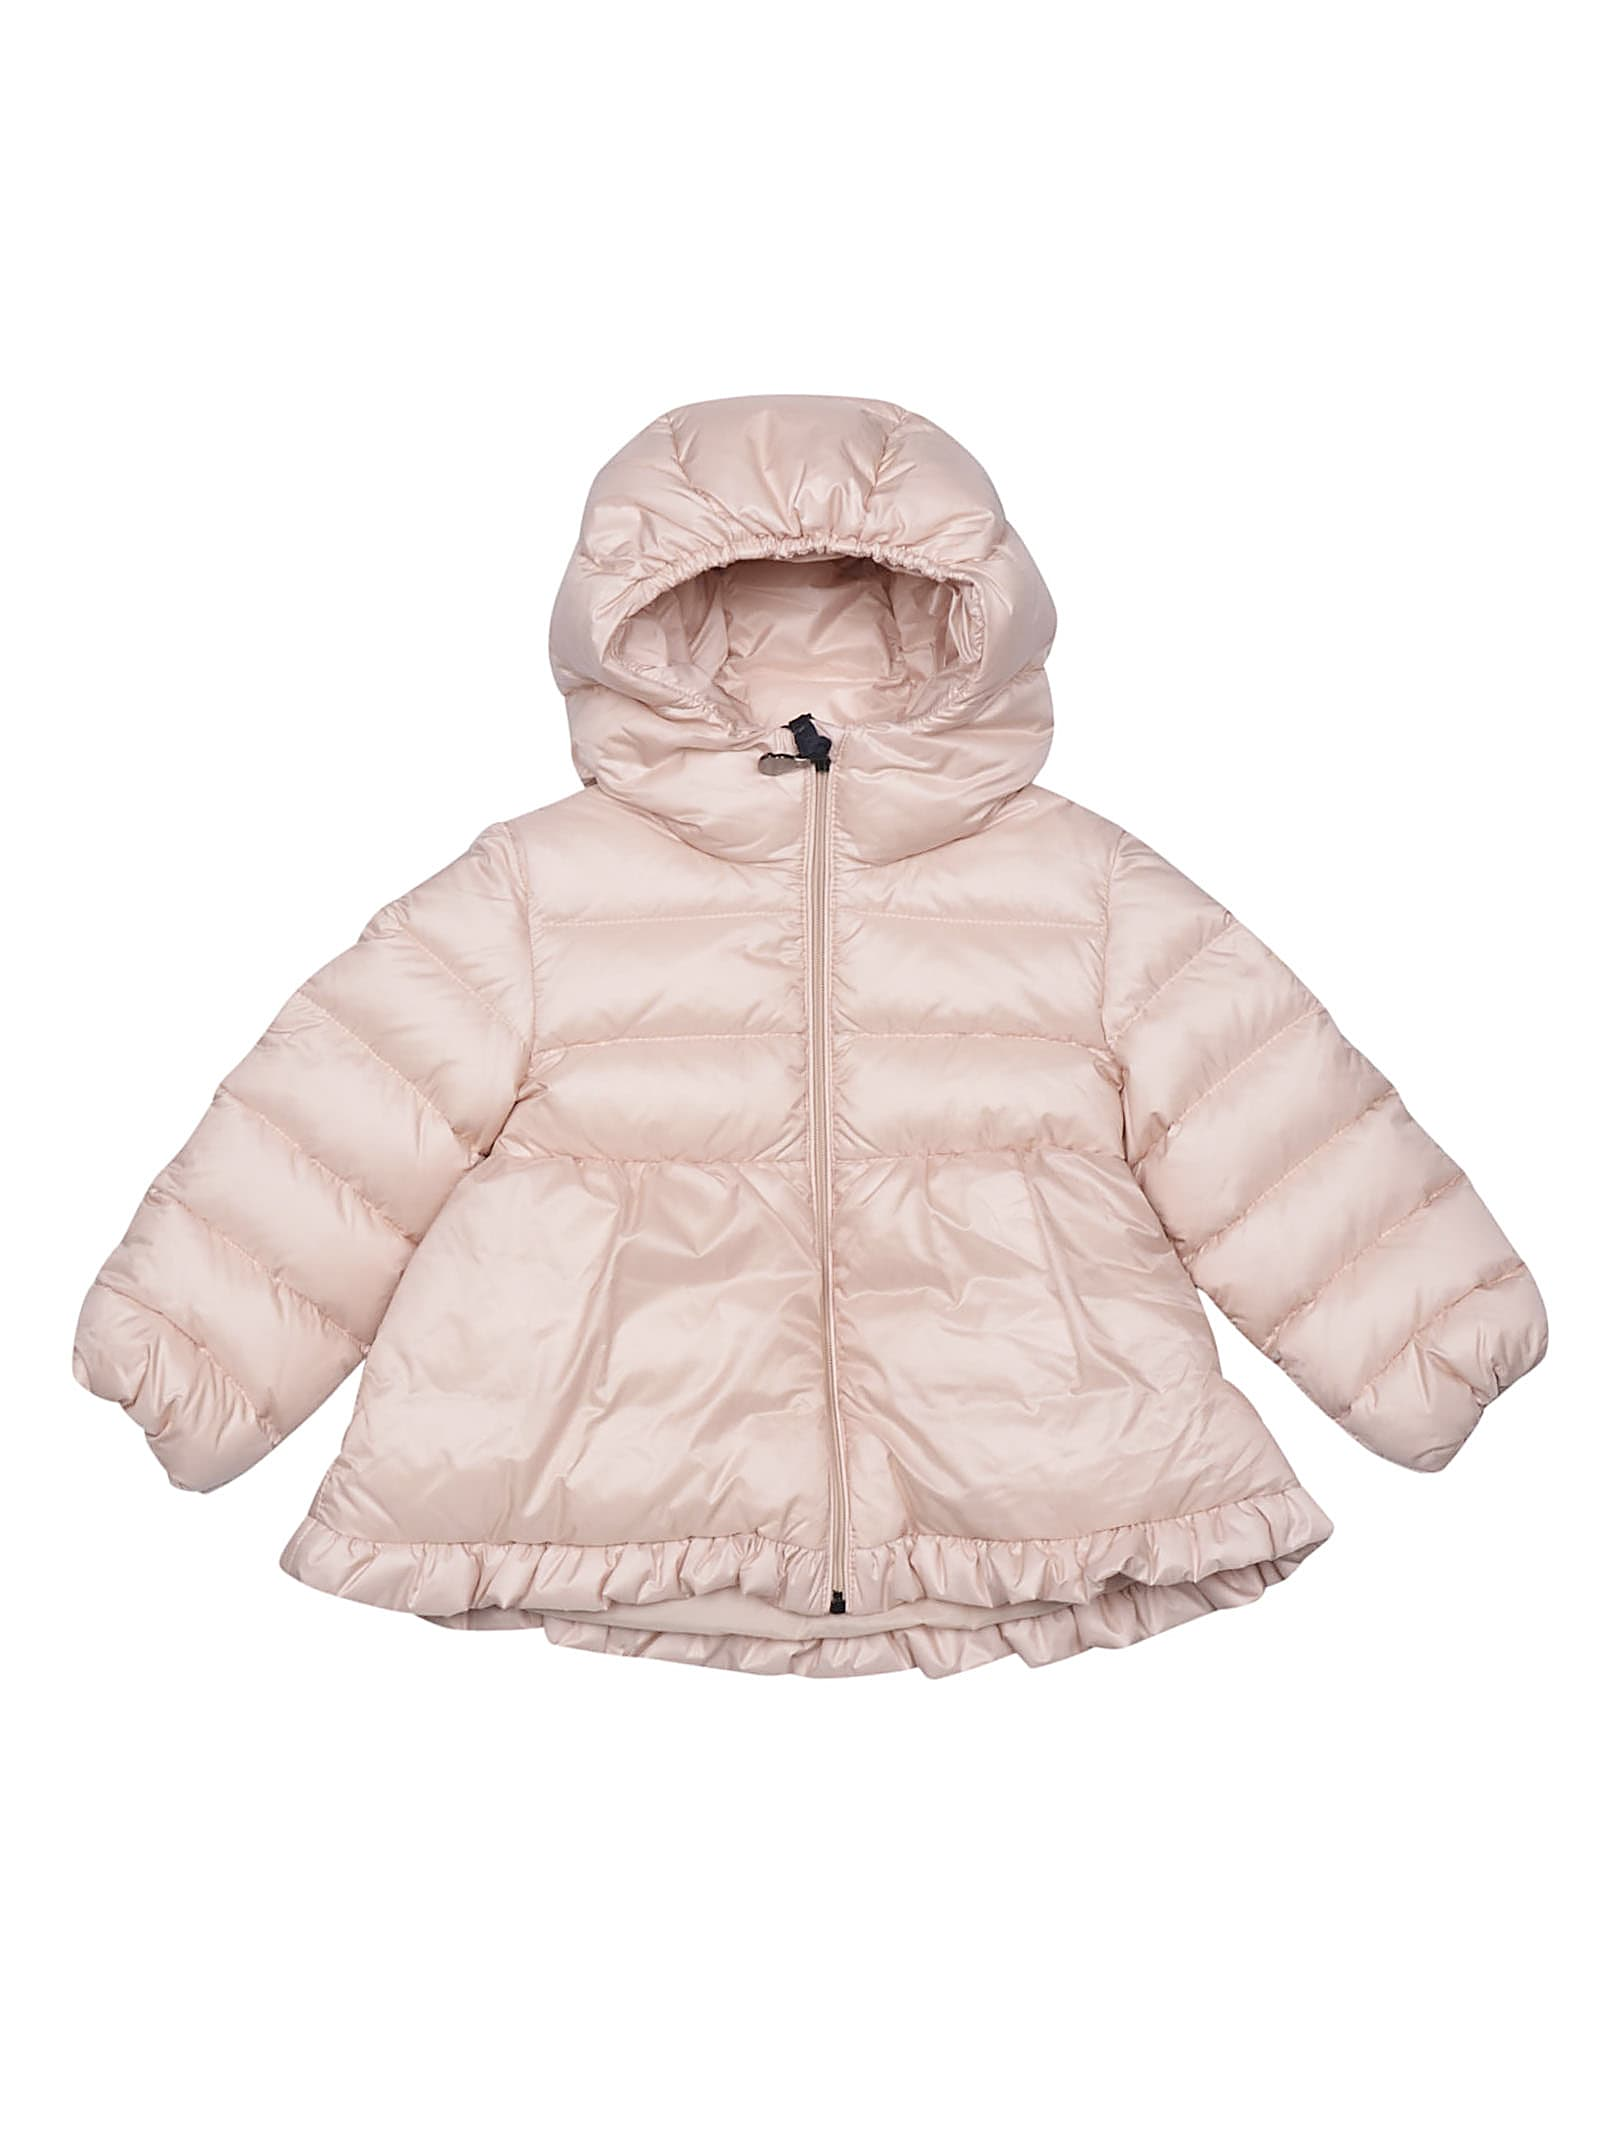 Moncler Babies' Odile Padded Jacket In Rosa